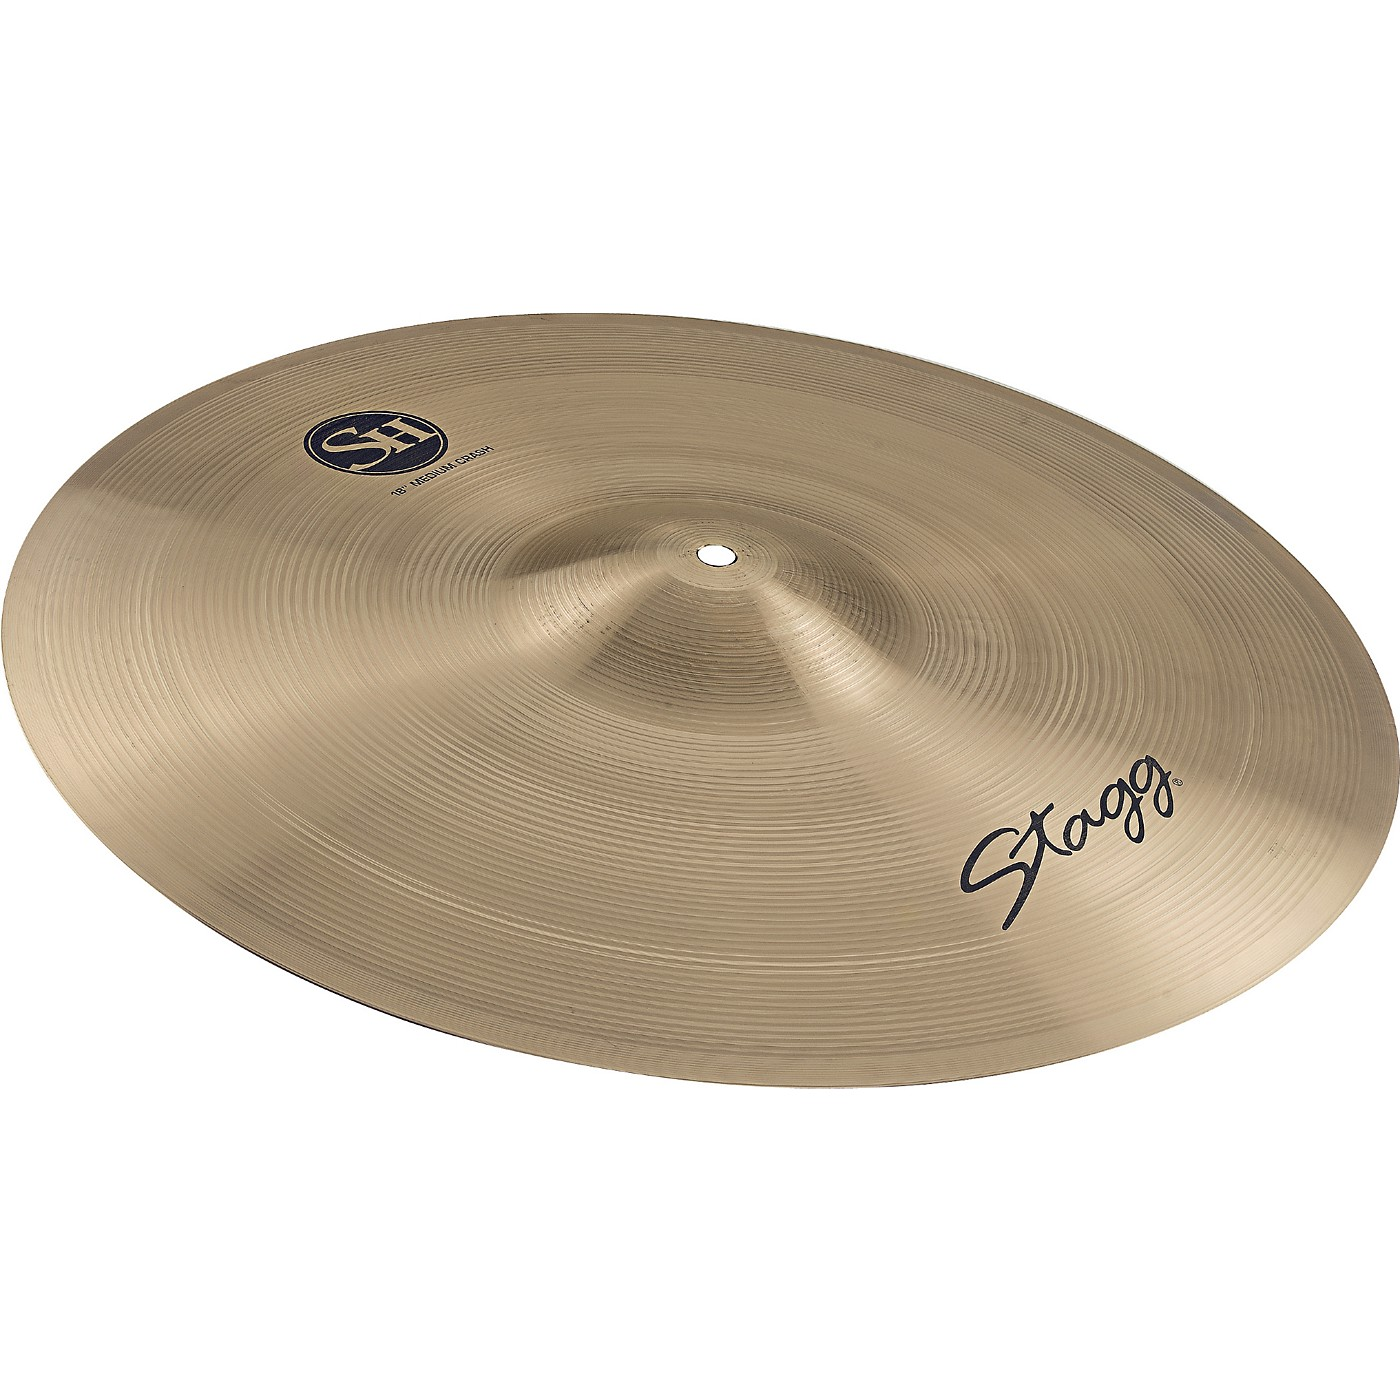 Stagg SH Regular Medium Crash Cymbal thumbnail